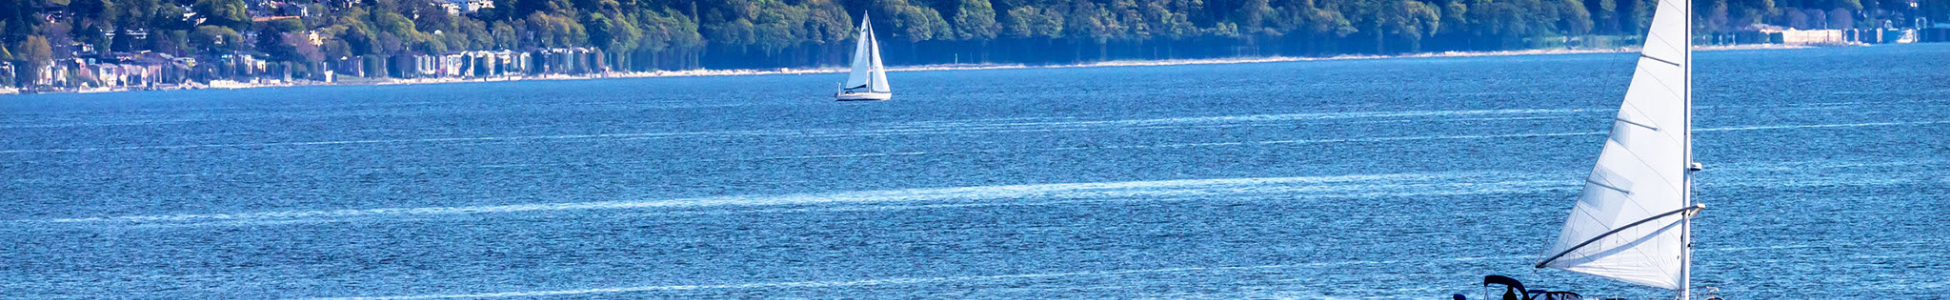 View of South Puget Sound and Capital Dome